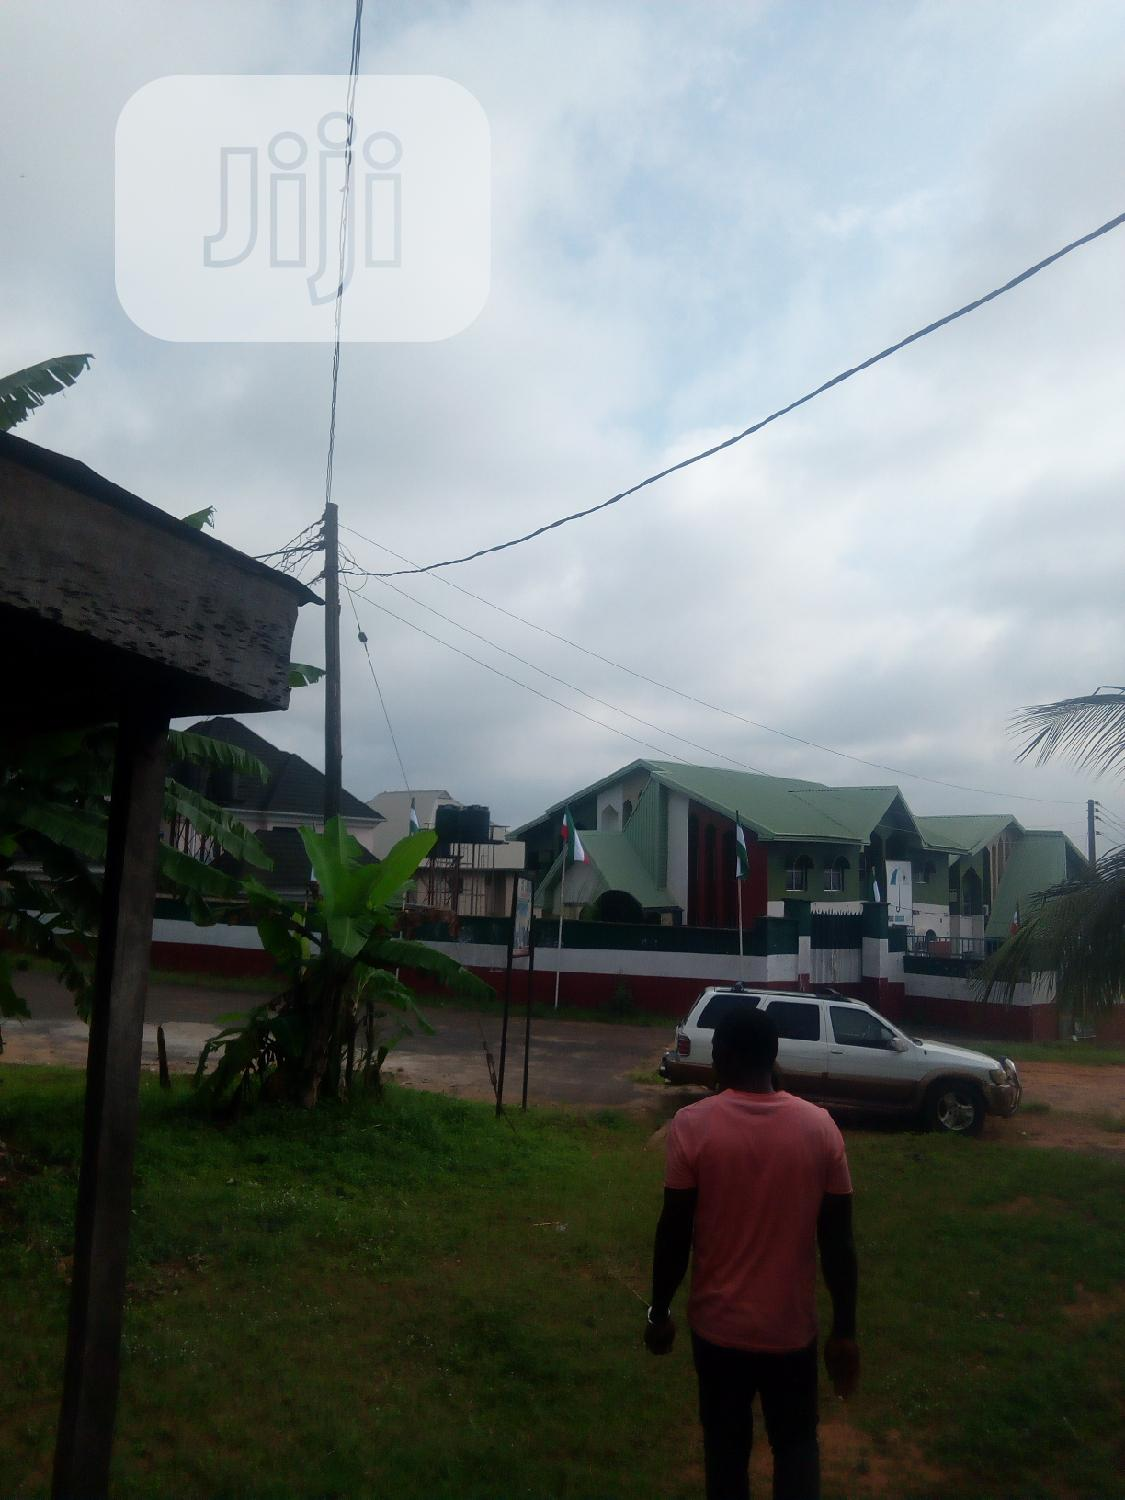 One Story Bilding For Sale At Udoka Housing Estate Awka | Houses & Apartments For Sale for sale in Awka, Anambra State, Nigeria